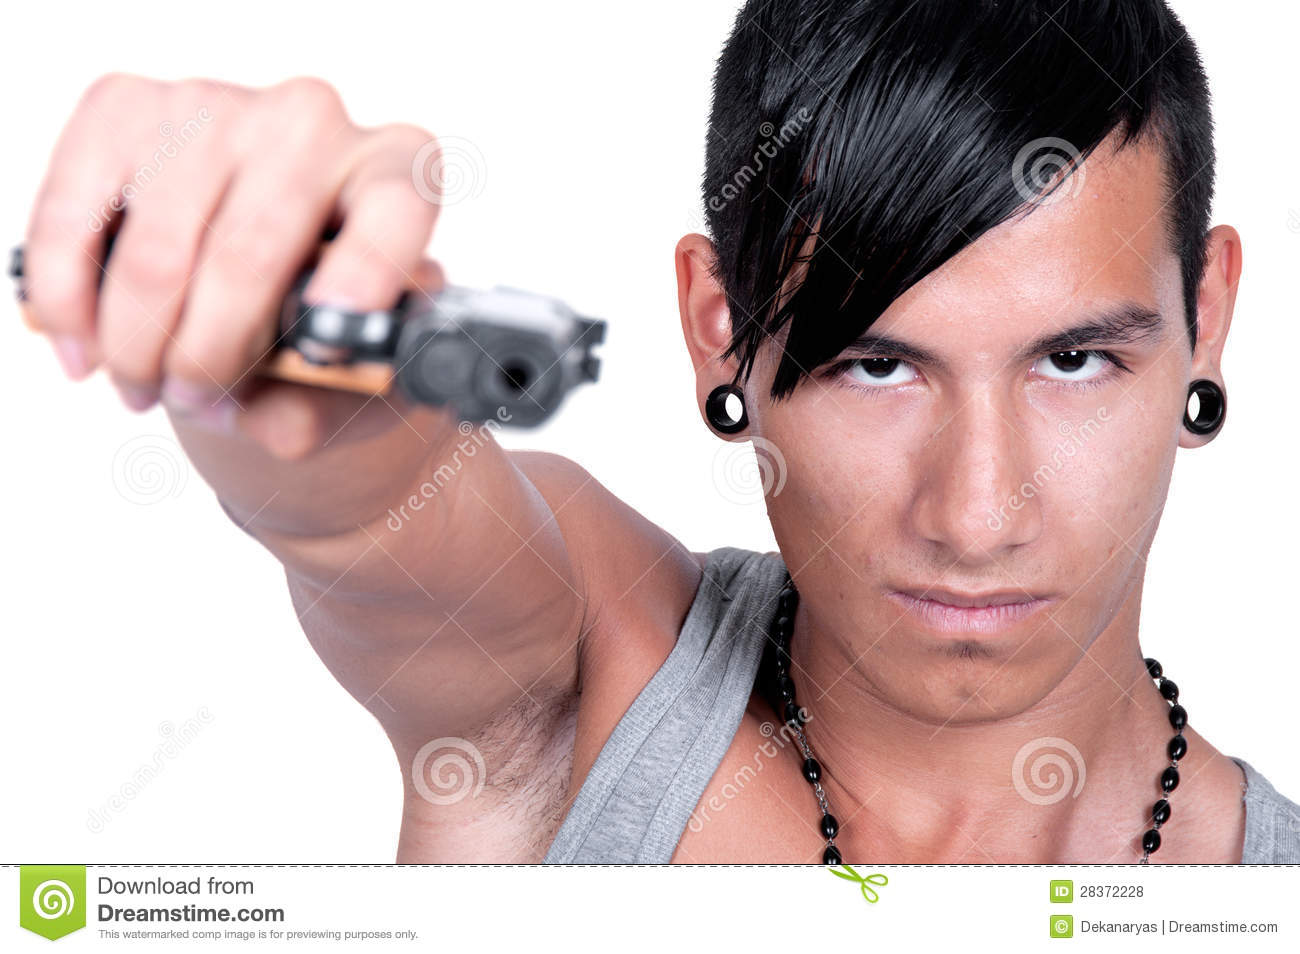 Hispanic Man Pointing Gun At Camera Stock Image of criminal